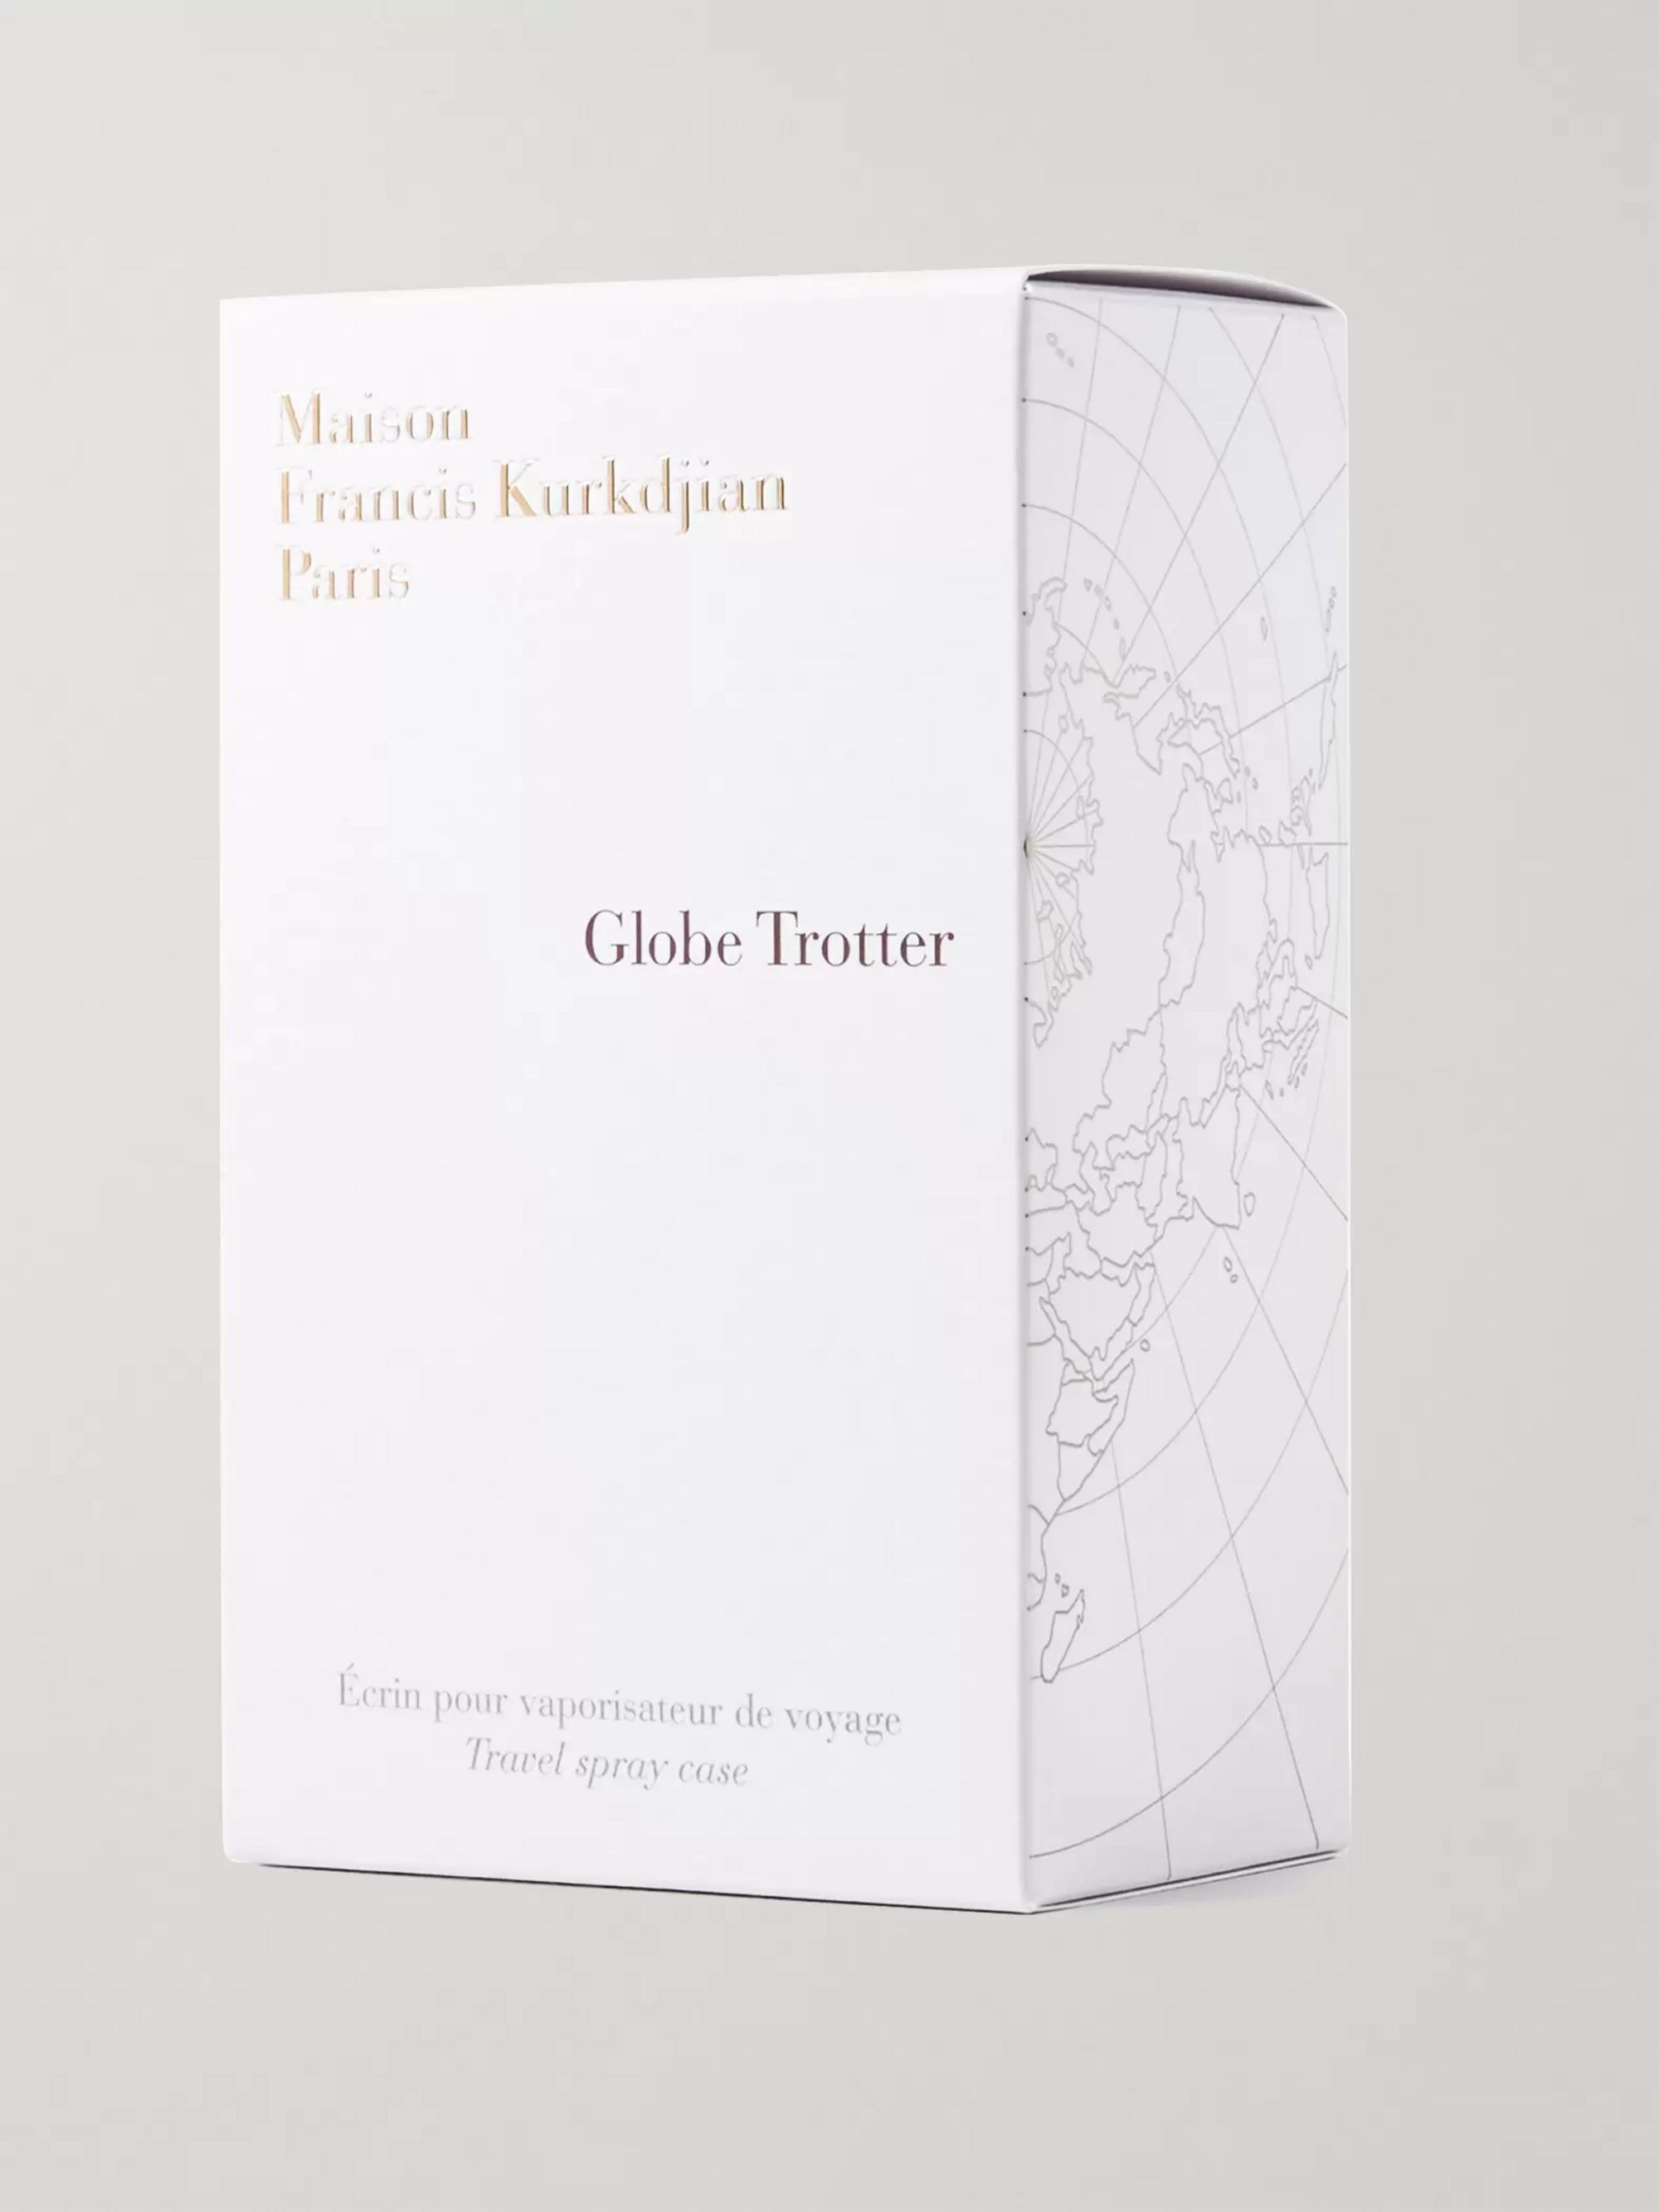 Maison Francis Kurkdjian Globe Trotter Zinc Edition Travel Spray Case